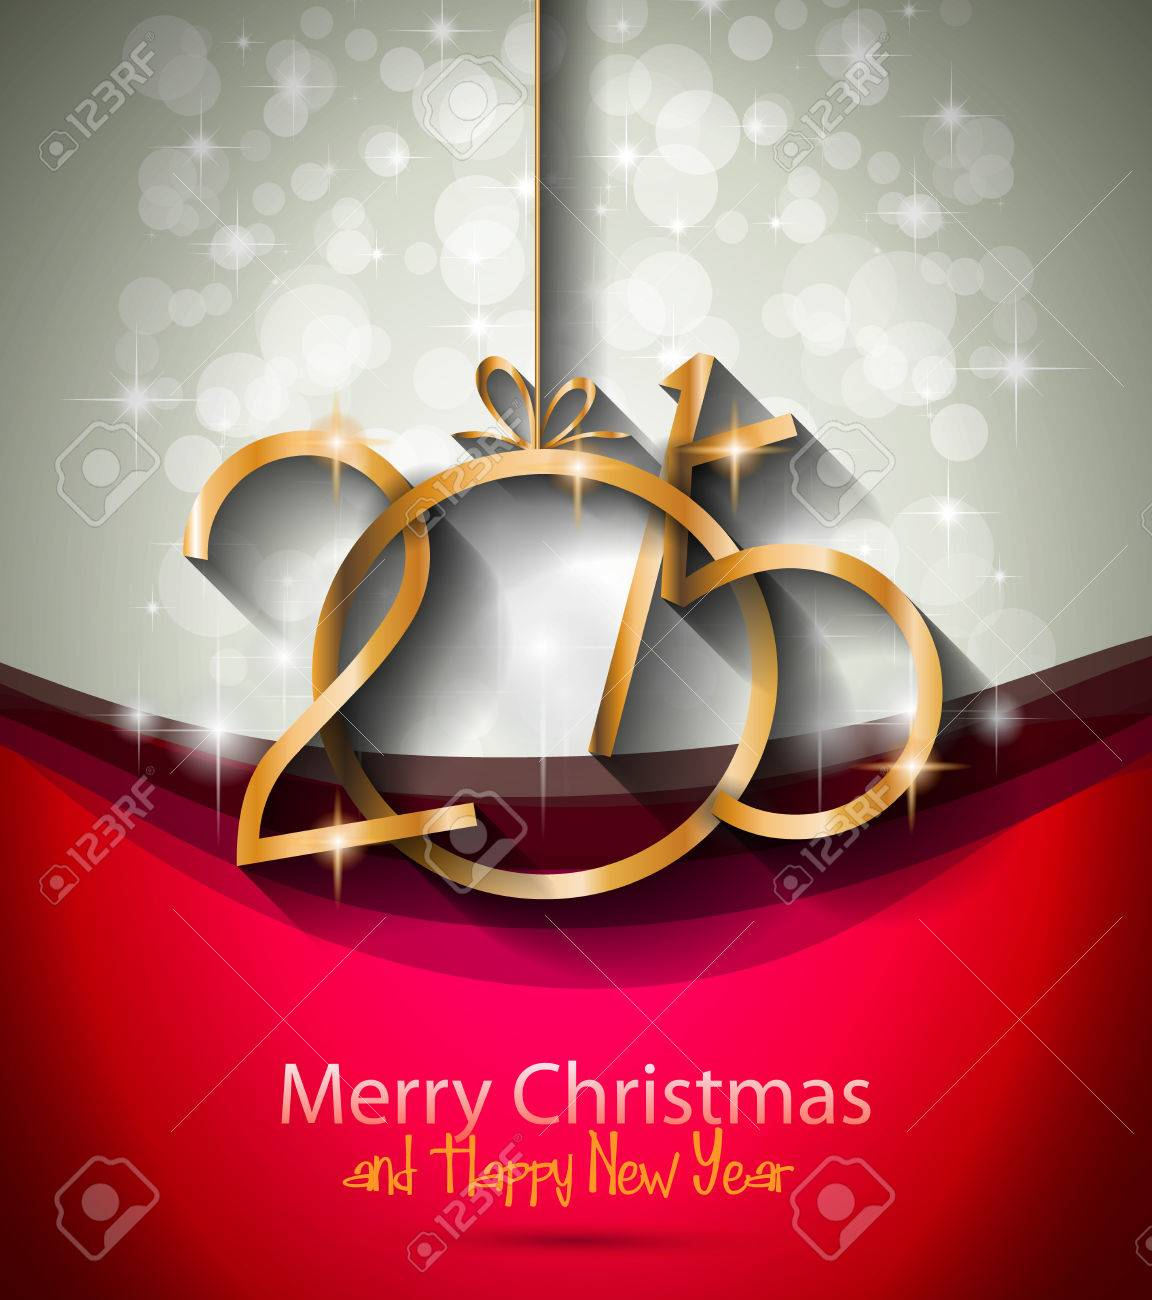 new year and happy christmas background for your flyers 2015 new year and happy christmas background for your flyers includes a lot of festive